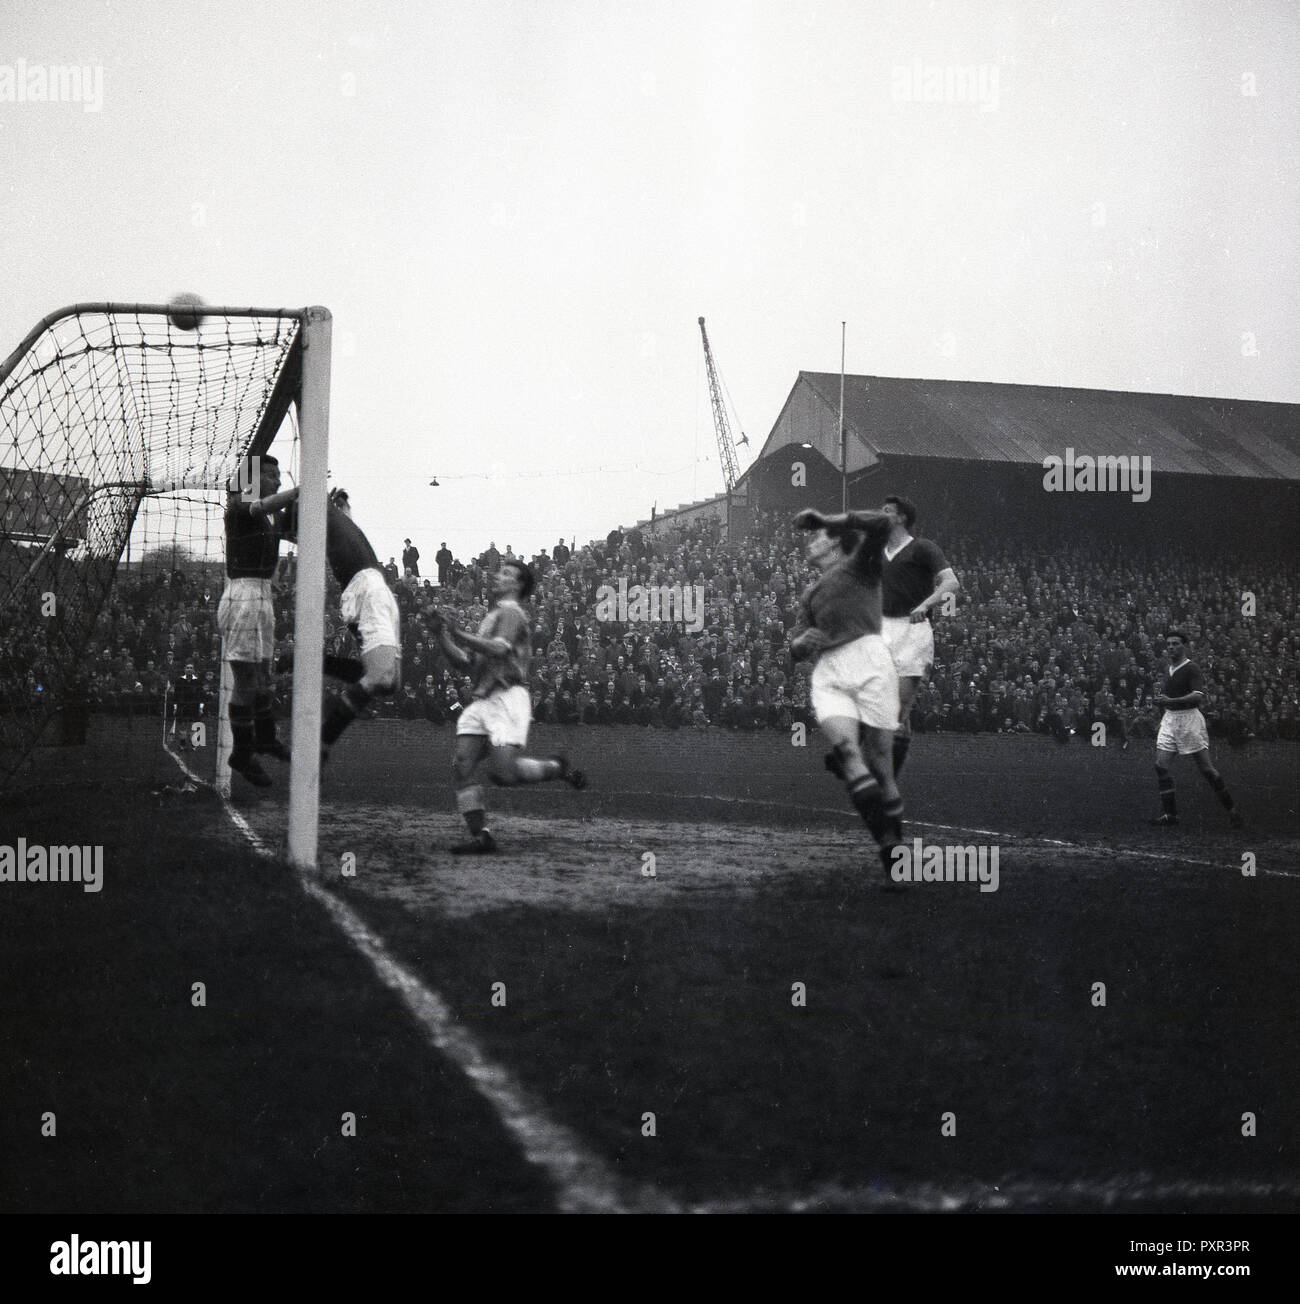 1950s, historical, goal line action at a football match at the Old Den, New Cross, London SE14, the home of Millwall FC, established in 1885. The large ground which opened in 1910 and while in use was known as 'The Den', could take 47,000 spectators, with over 43,000 of these standing. - Stock Image